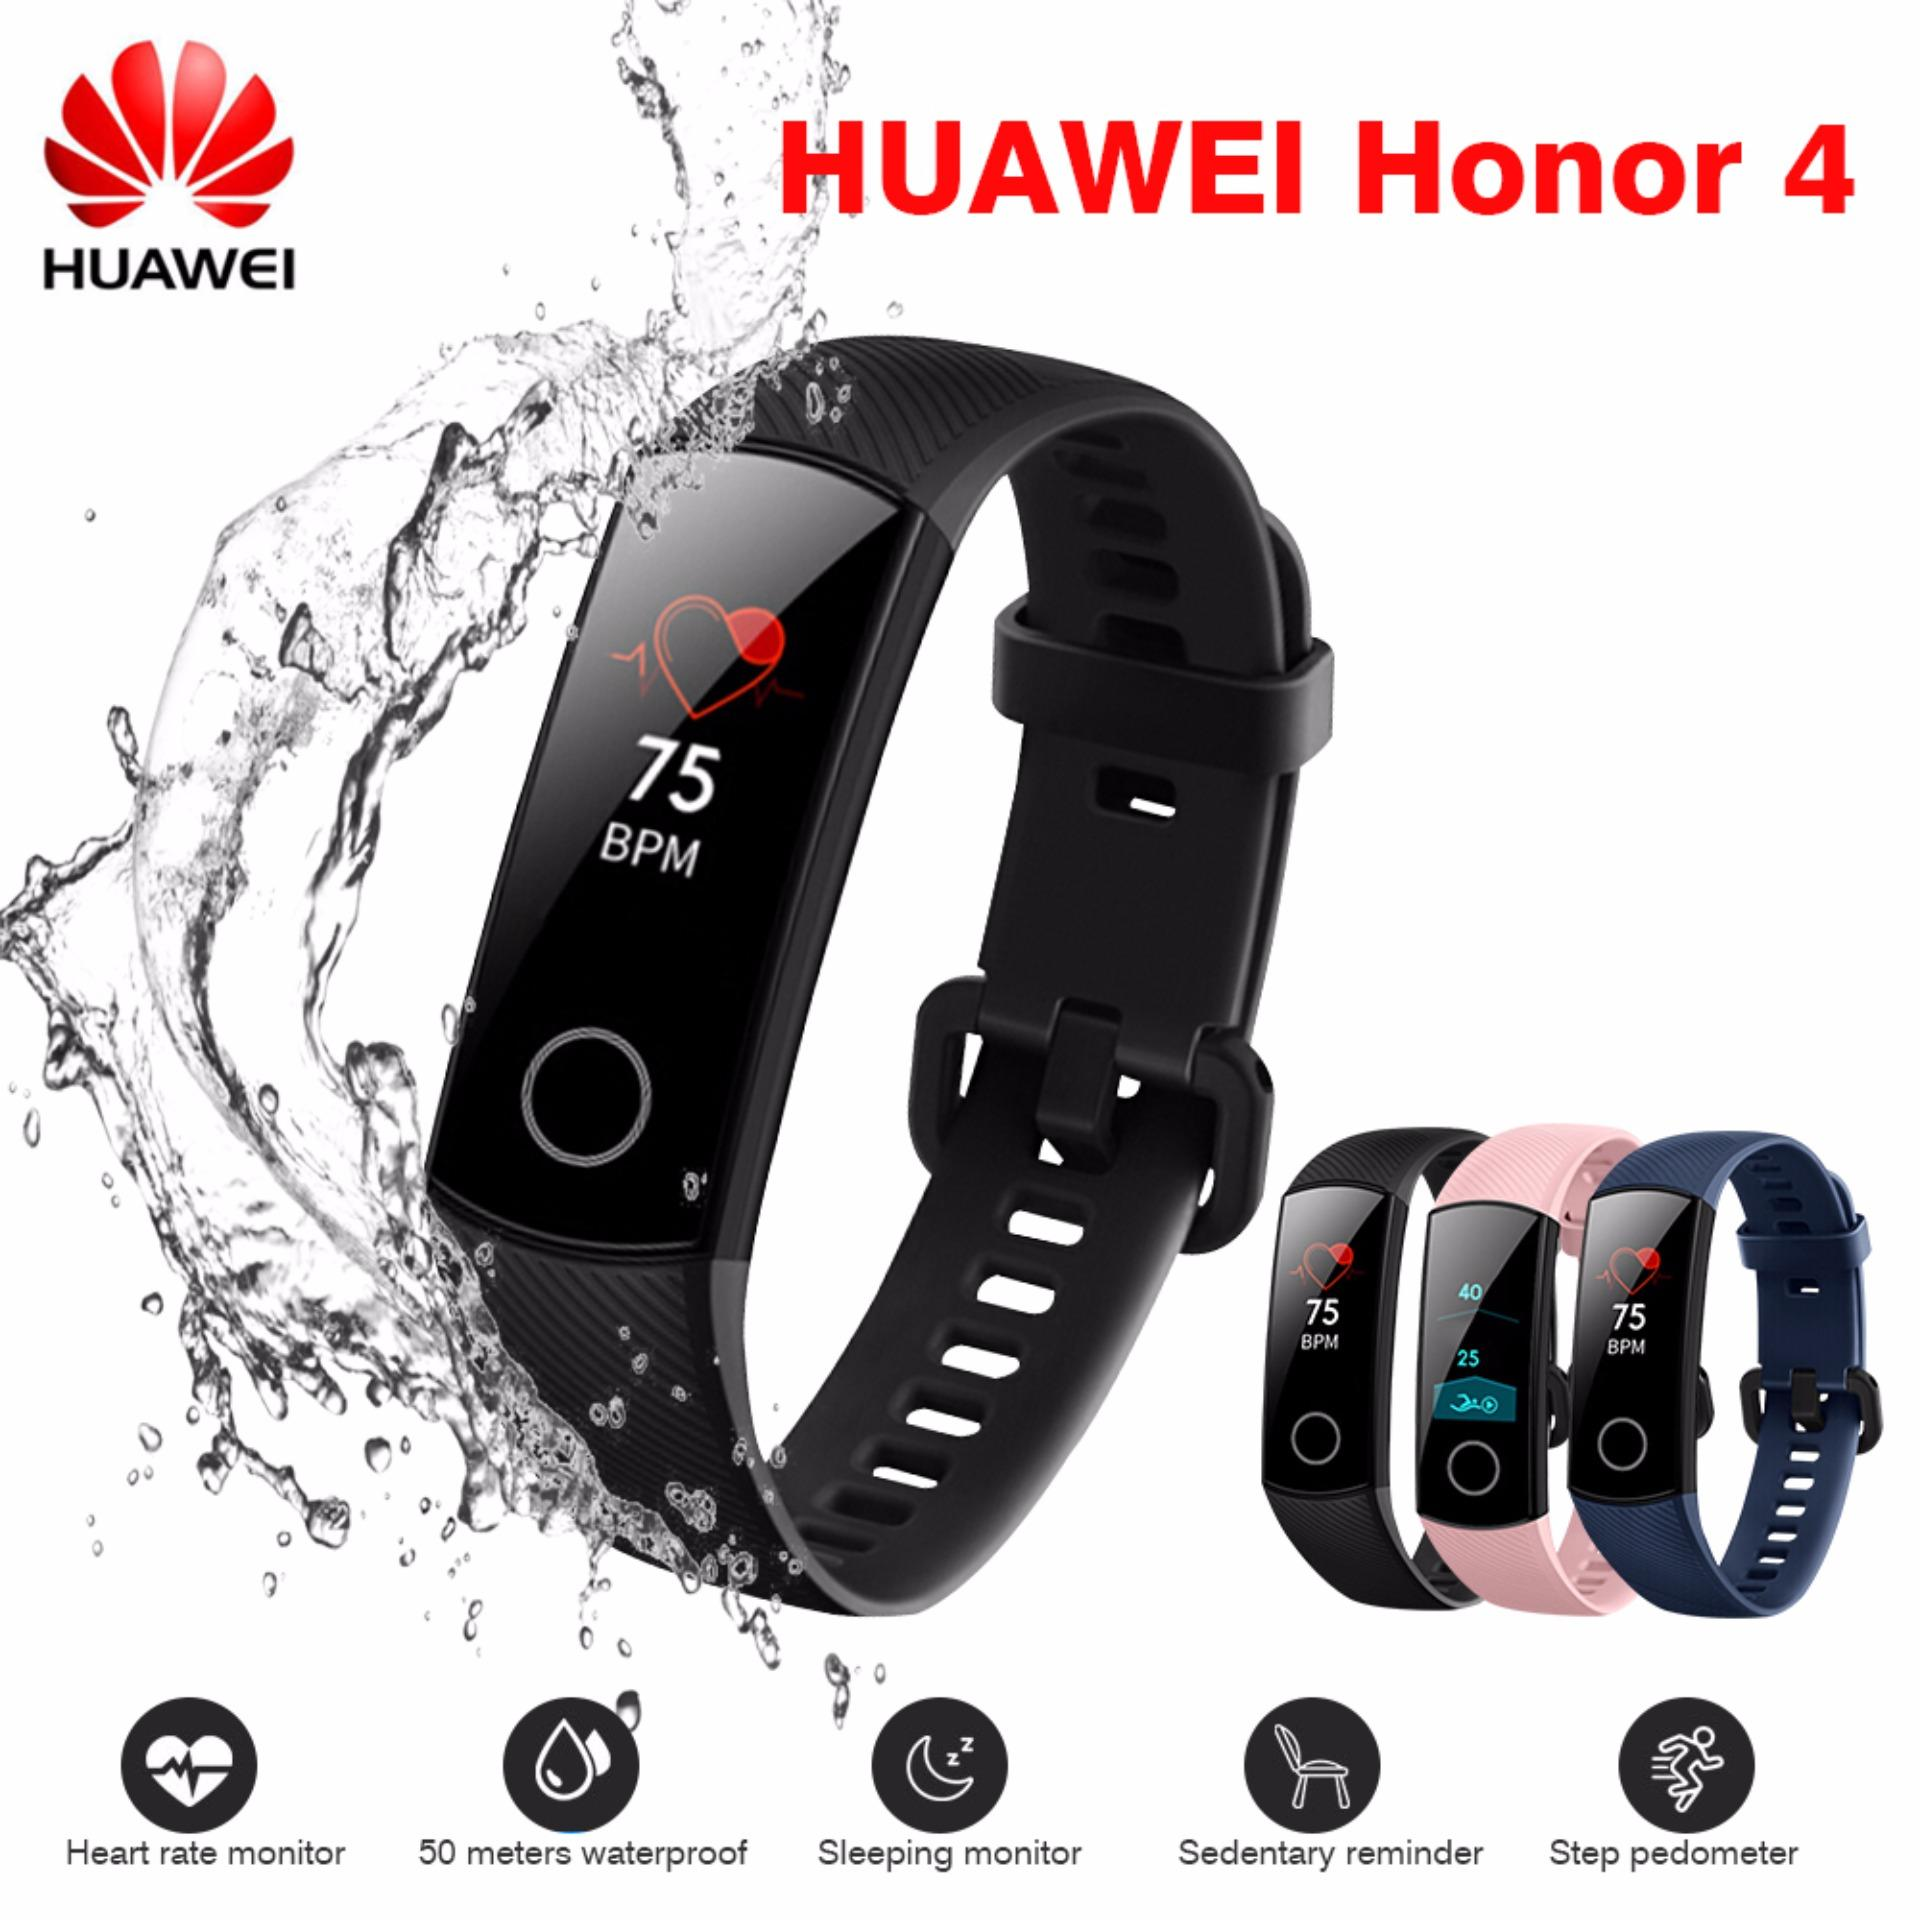 (50m Waterproof) 100% Original Huawei Honor band 4 Smart Wristband 0 95  inch Screen Bluetooth 4 2 Call / Message Reminder Heart Rate Monitor